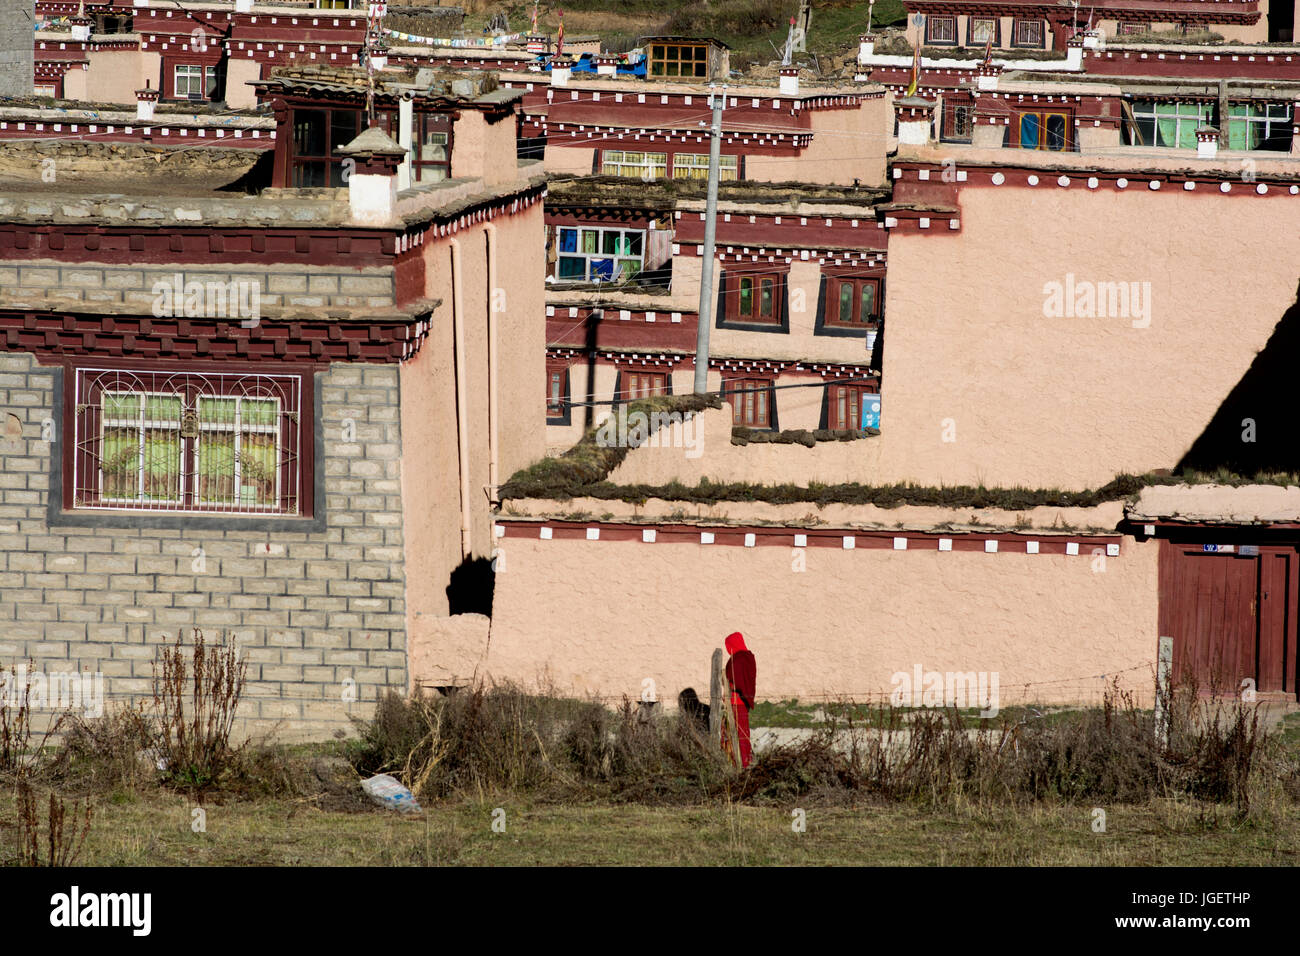 Tibetan monk walking in the colorful city of Litang, Sichuan, China. - Stock Image